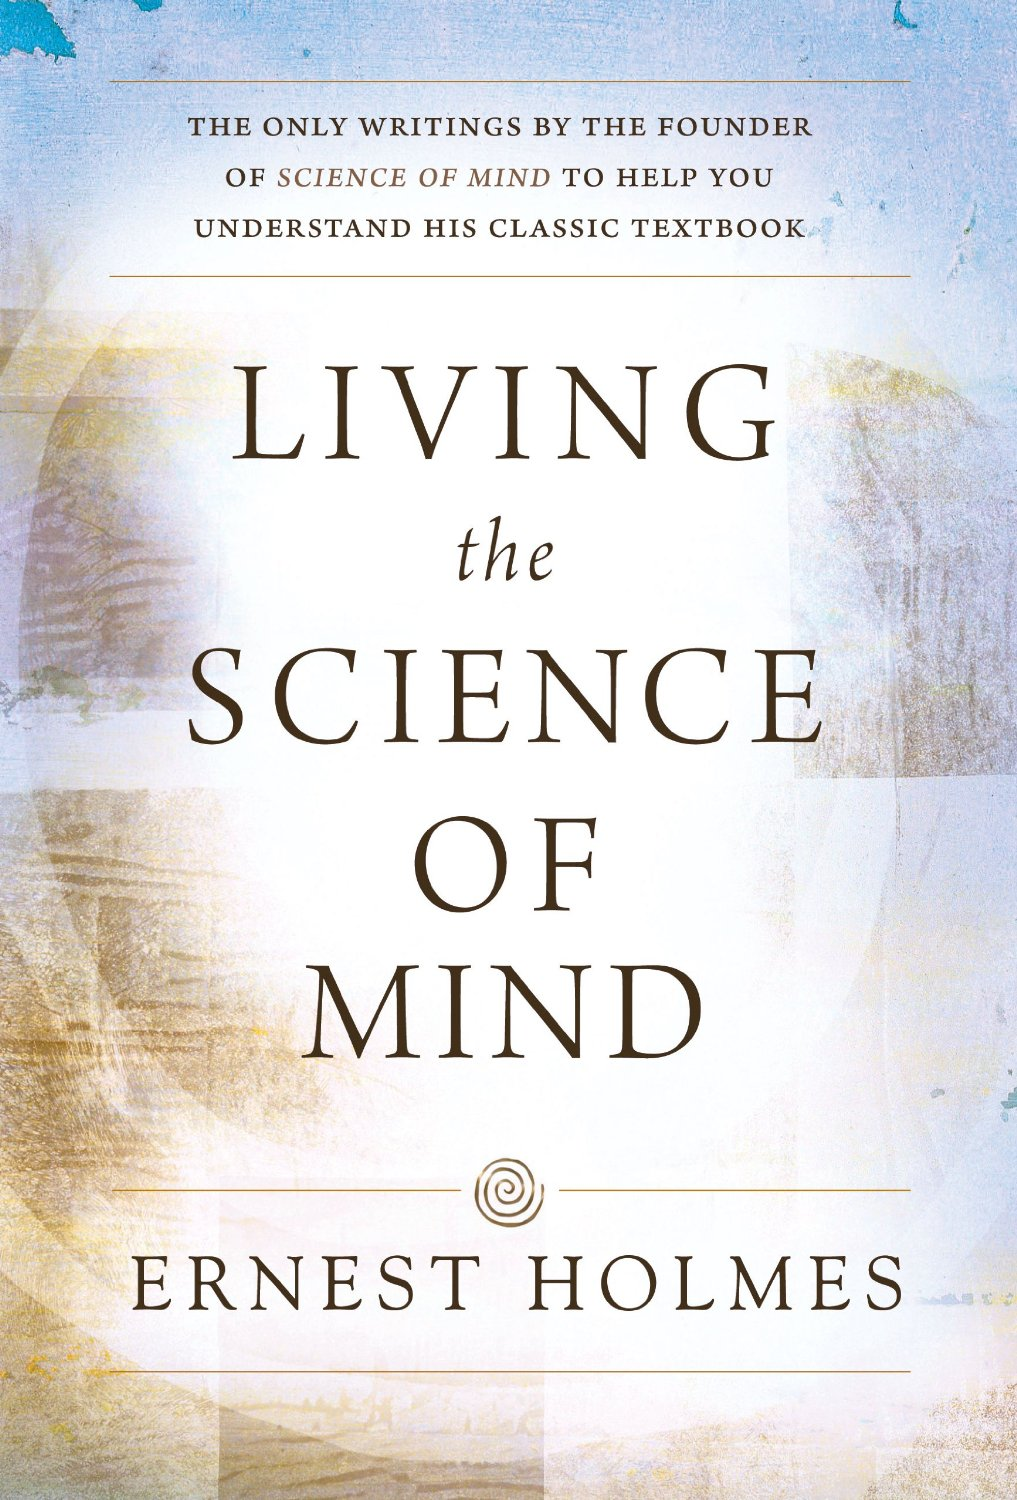 Living the Science of Mind by Ernest Holmes